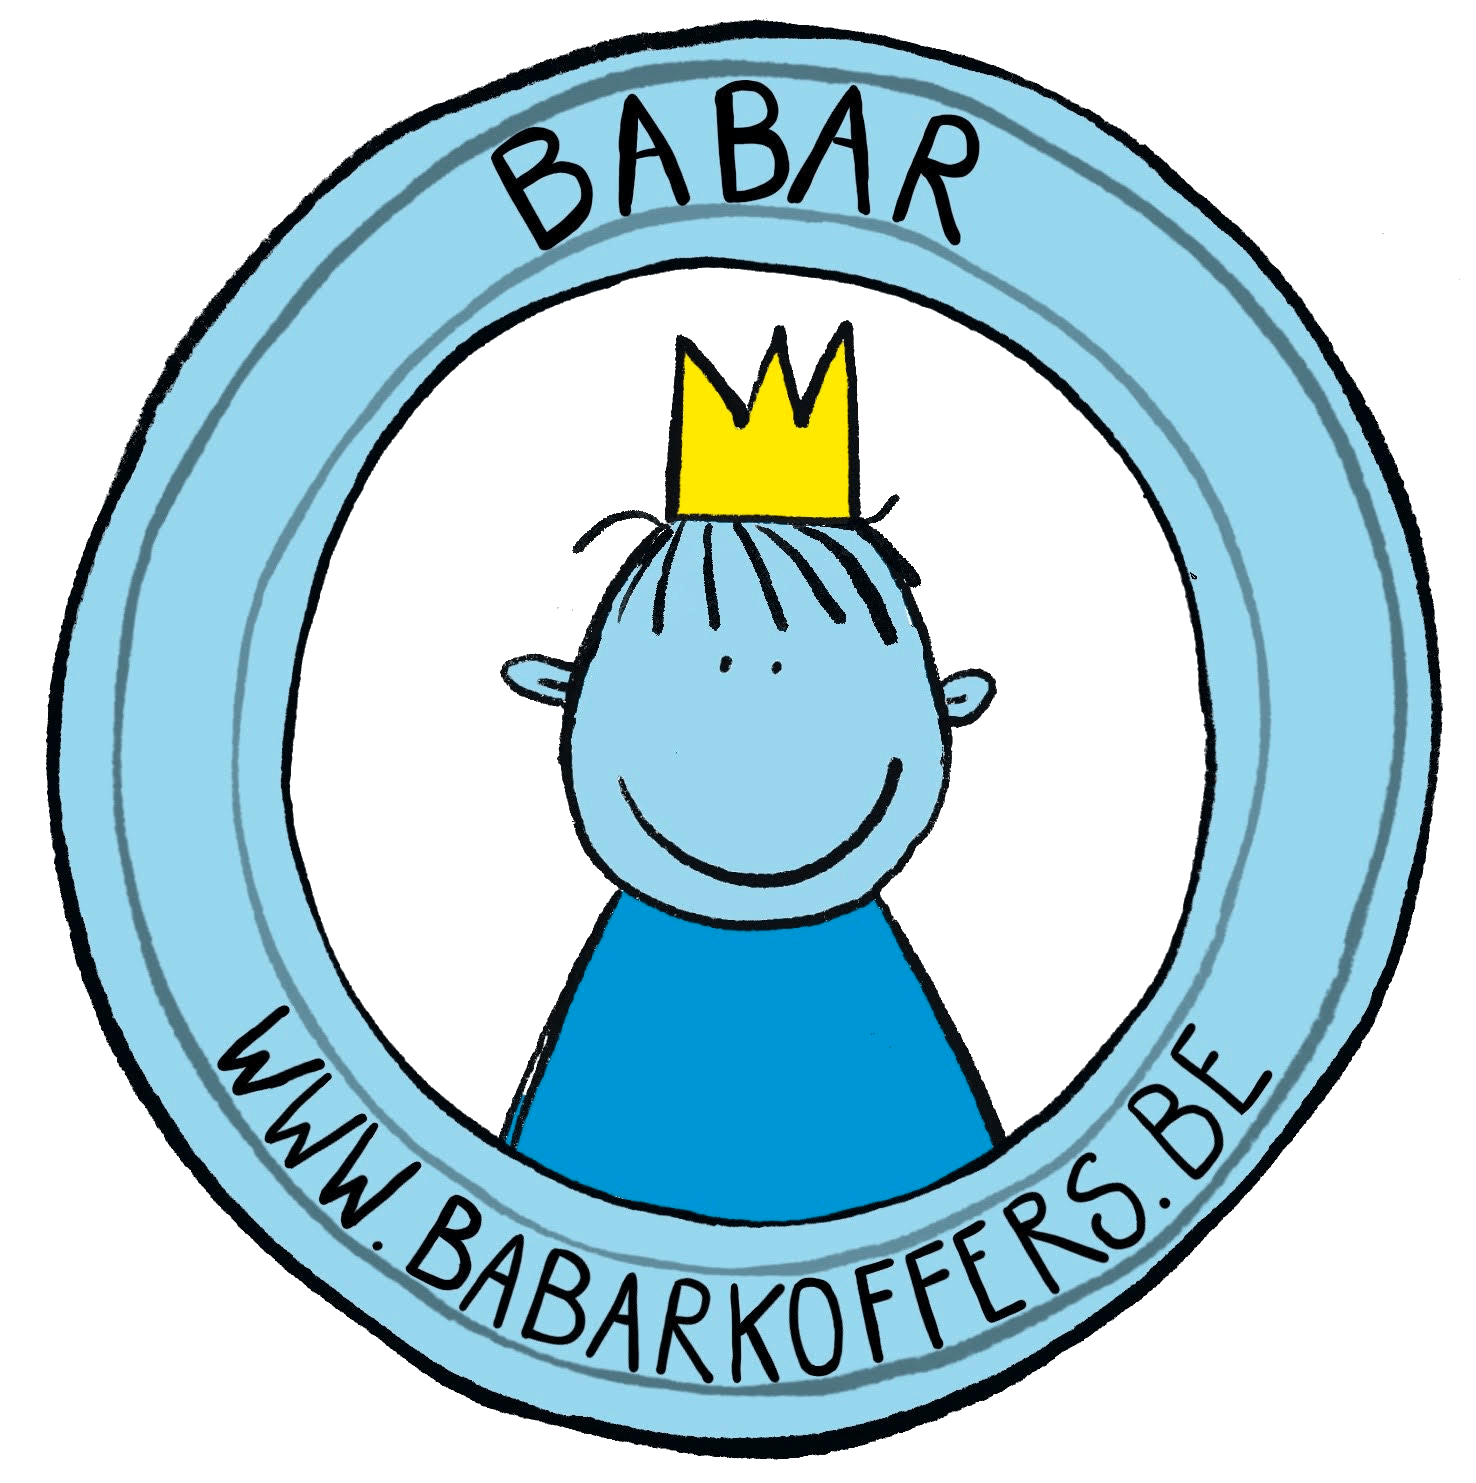 babarkoffers logo